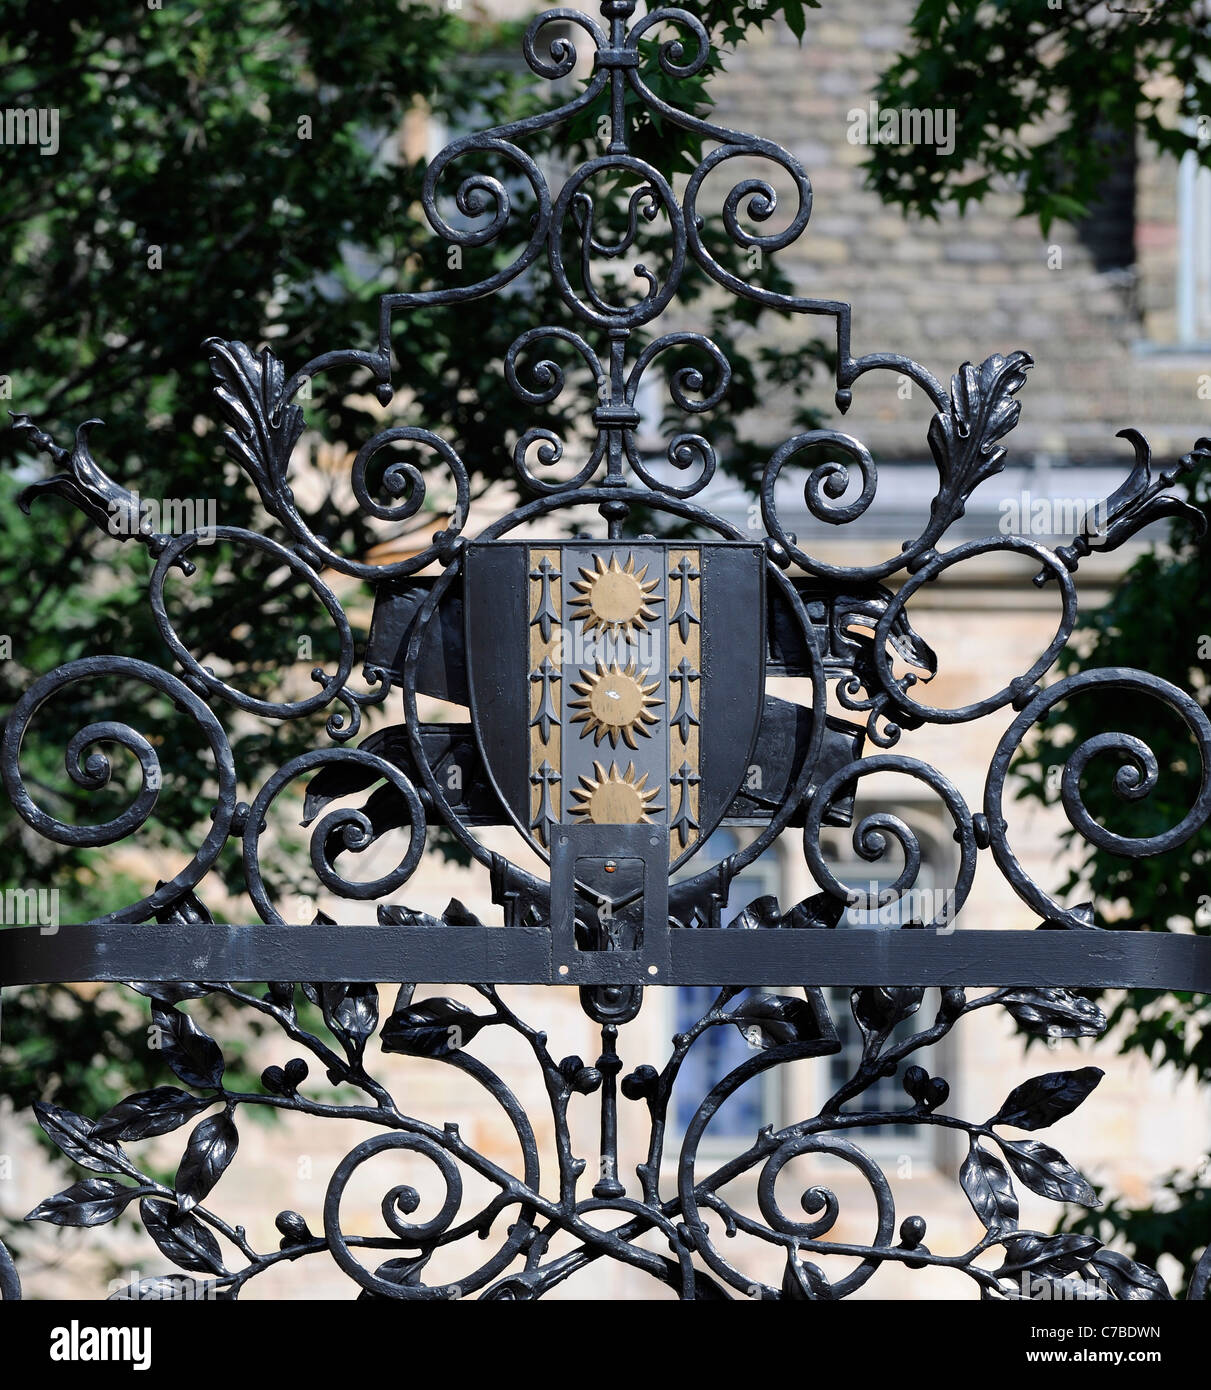 Yale University Pierson Residential wrought iron gate detail - Stock Image